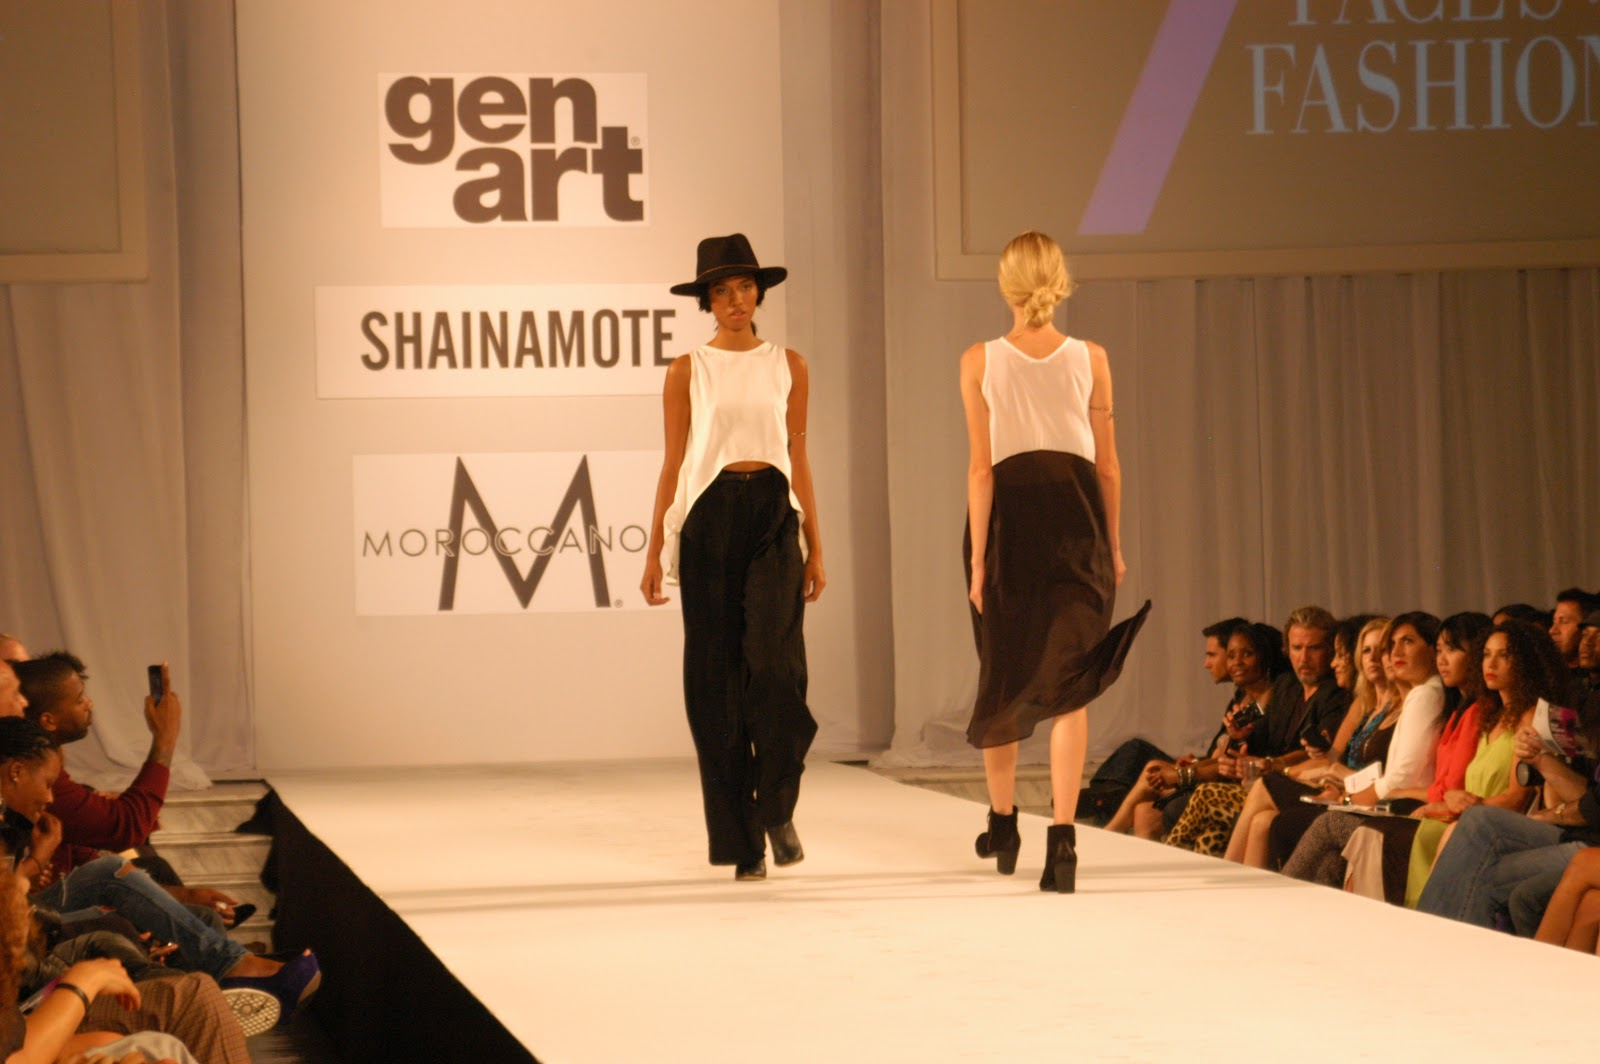 08fee48fb0 The designers submitted their look books earlier this year and those  selected were featured on the runway during Fashion Week in New York in  September and ...